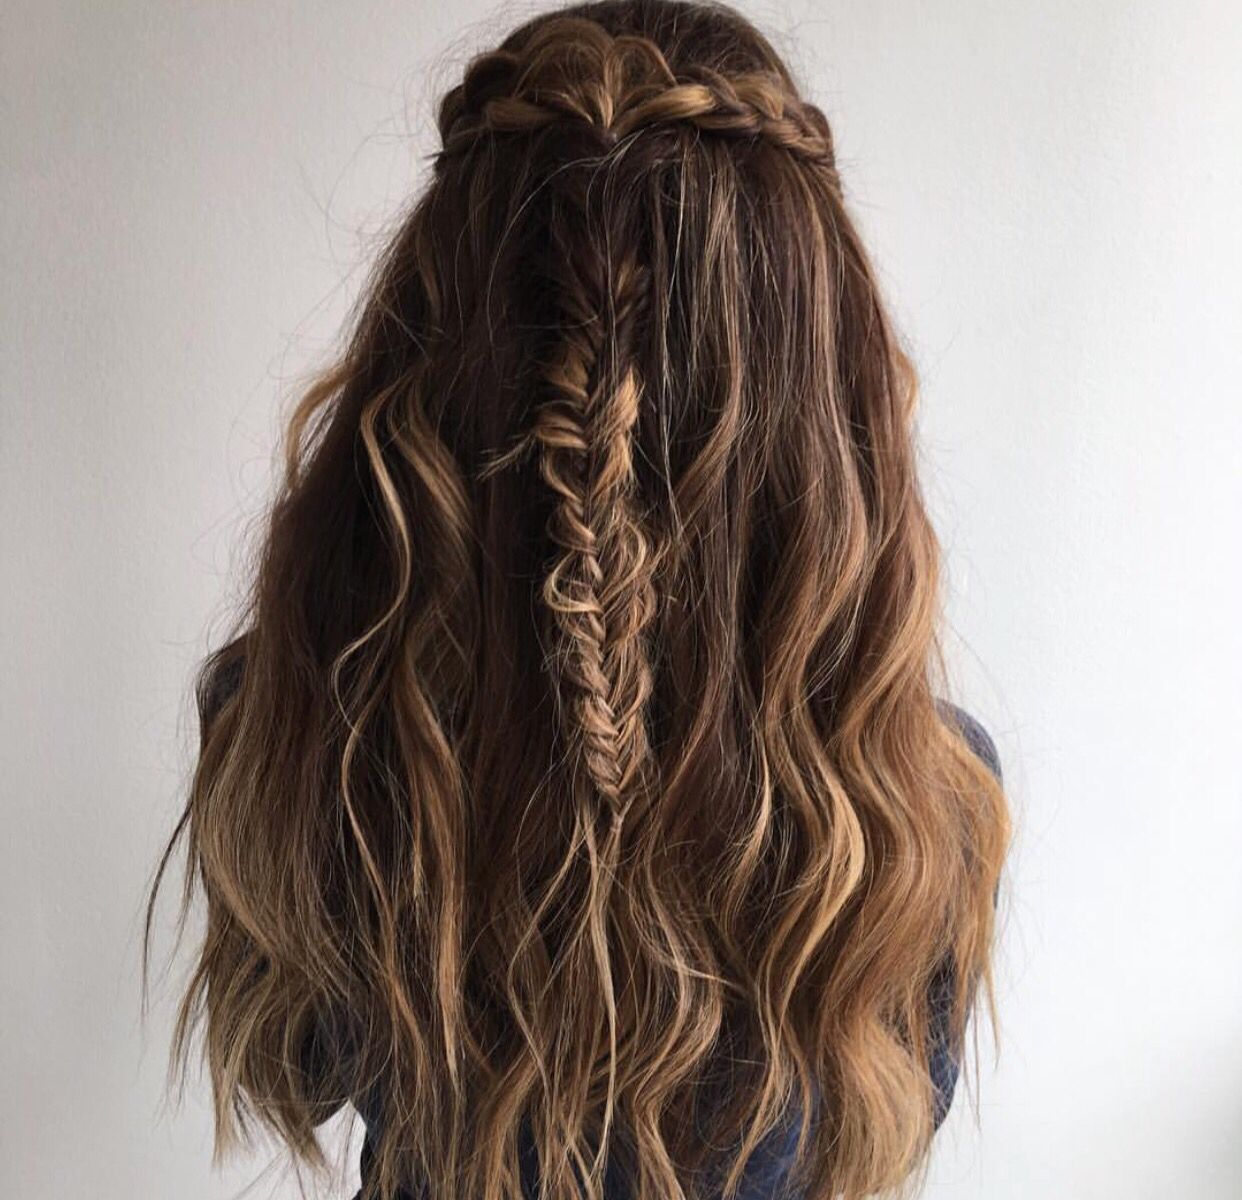 93 Special Hairstyle Ideas To Try This Fall Hairstyle In 2020 Long Hair Styles Curly Hair Styles Short Hair Styles